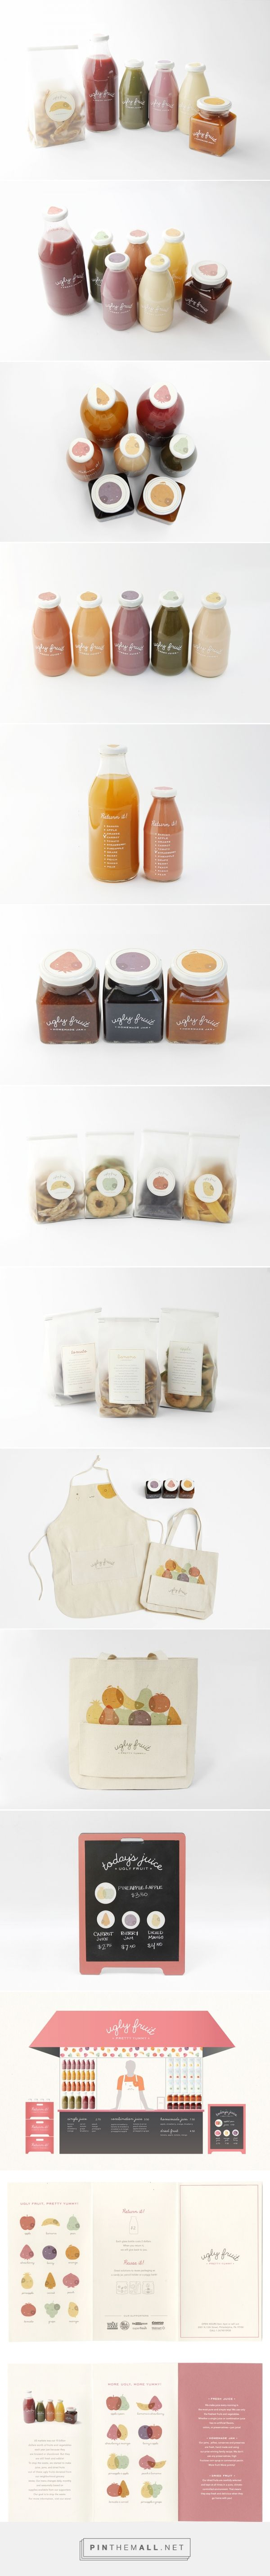 Ugly Fruit by Miram Seo curated by Packaging Diva PD. Ugly Fruit makes juice, jams, and dried fruits out of unattractive produce donated from neighborhood grocery stores. Ugly fruit, pretty yummy packaging branding idea.